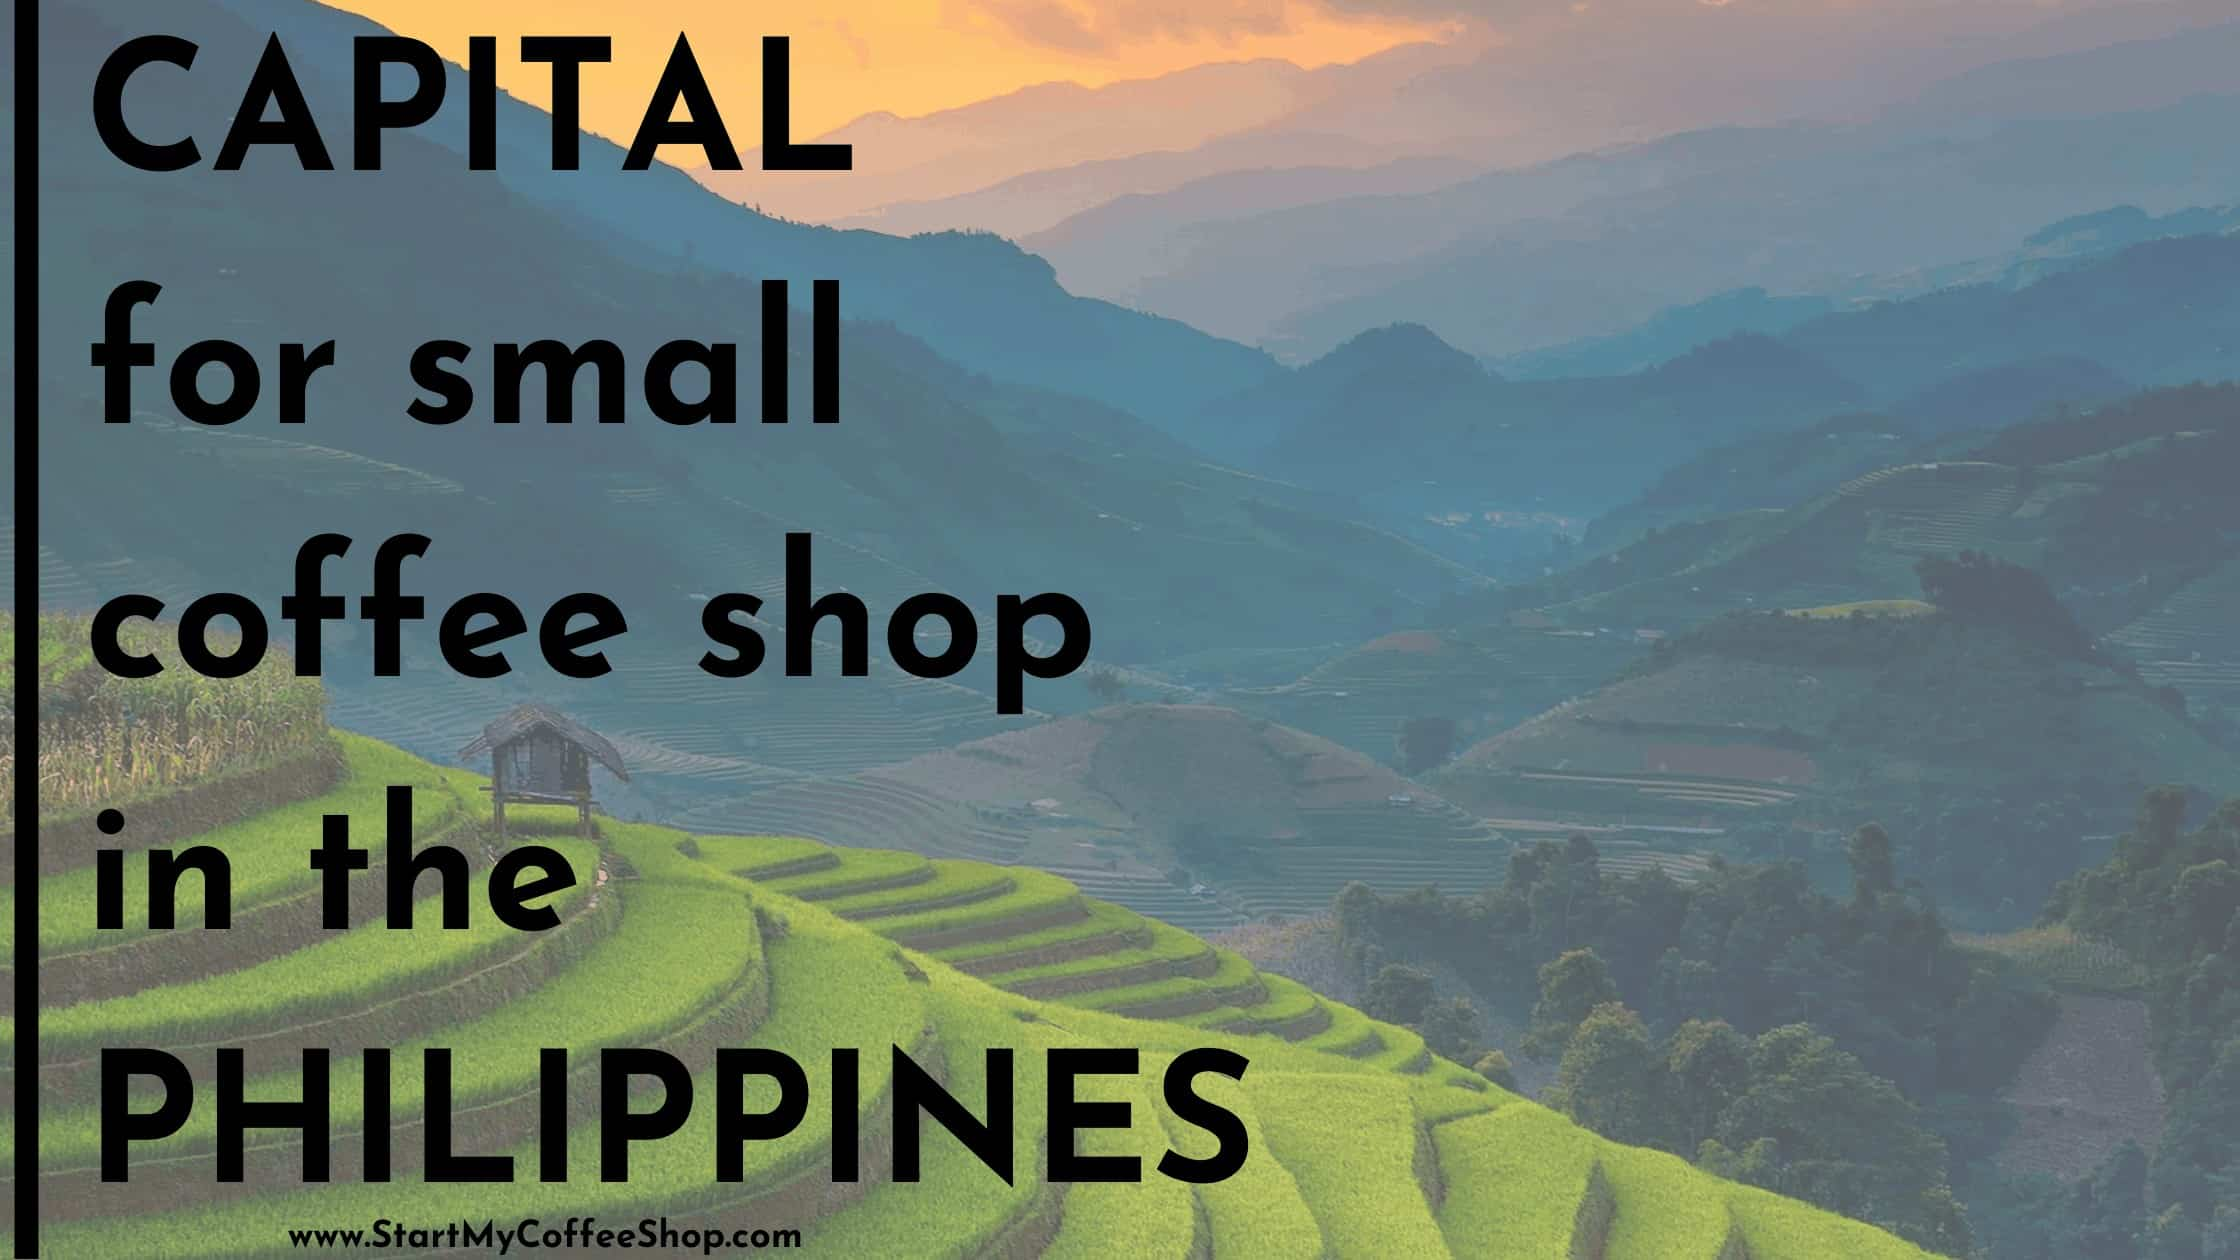 Capital for small coffee shop in the Philippines